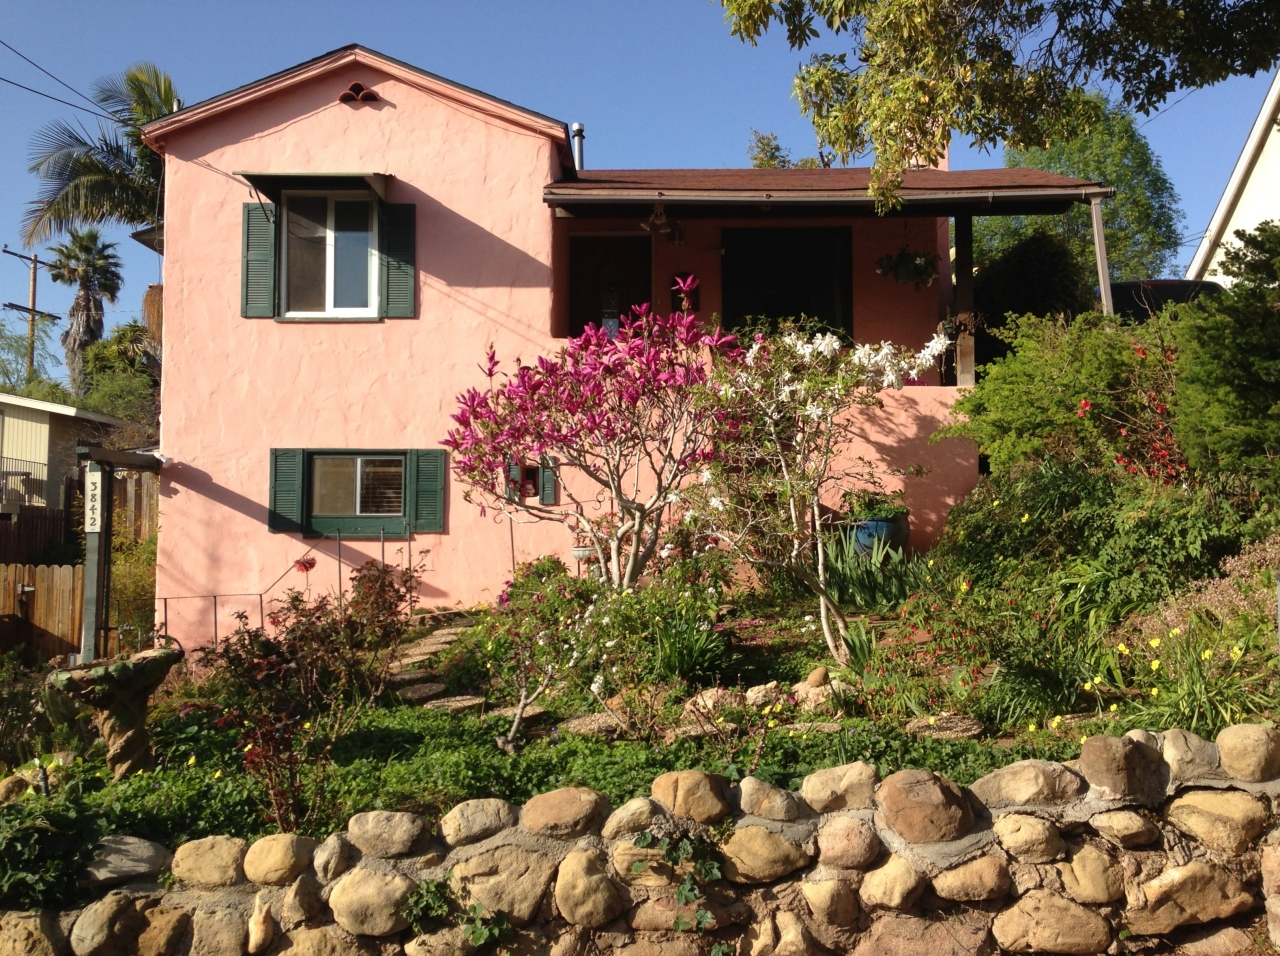 Property photo for 3842 Center Ave Santa Barbara, California 93110 - 13-114